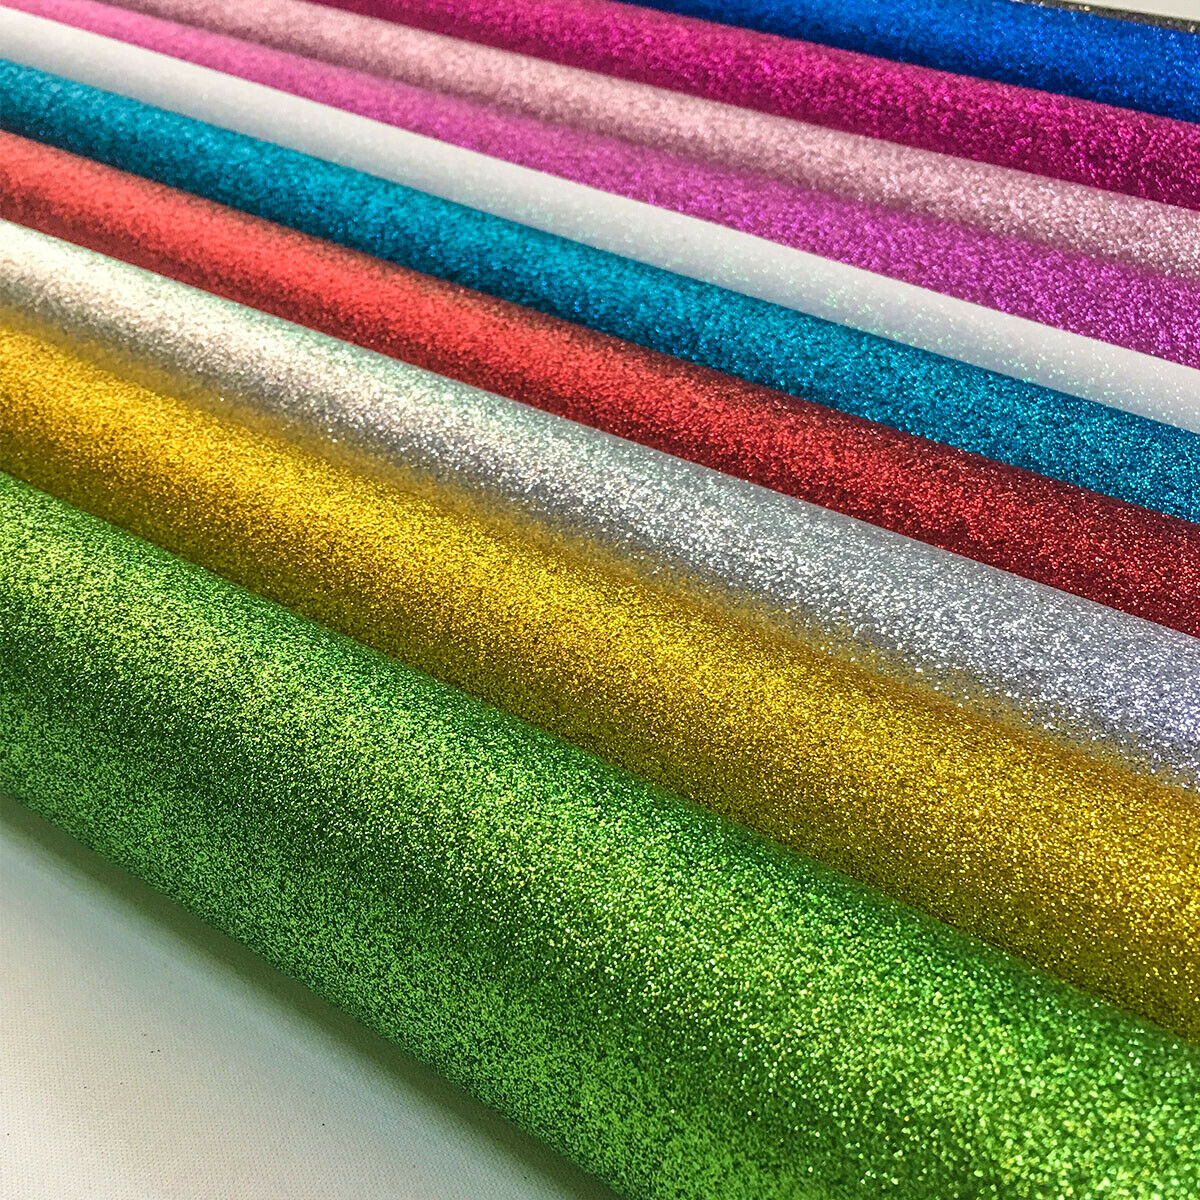 Fine Glitter Fabric Roll Iridescent Sparkle Faux Leather Craft Material Bows Bag Decor DIY